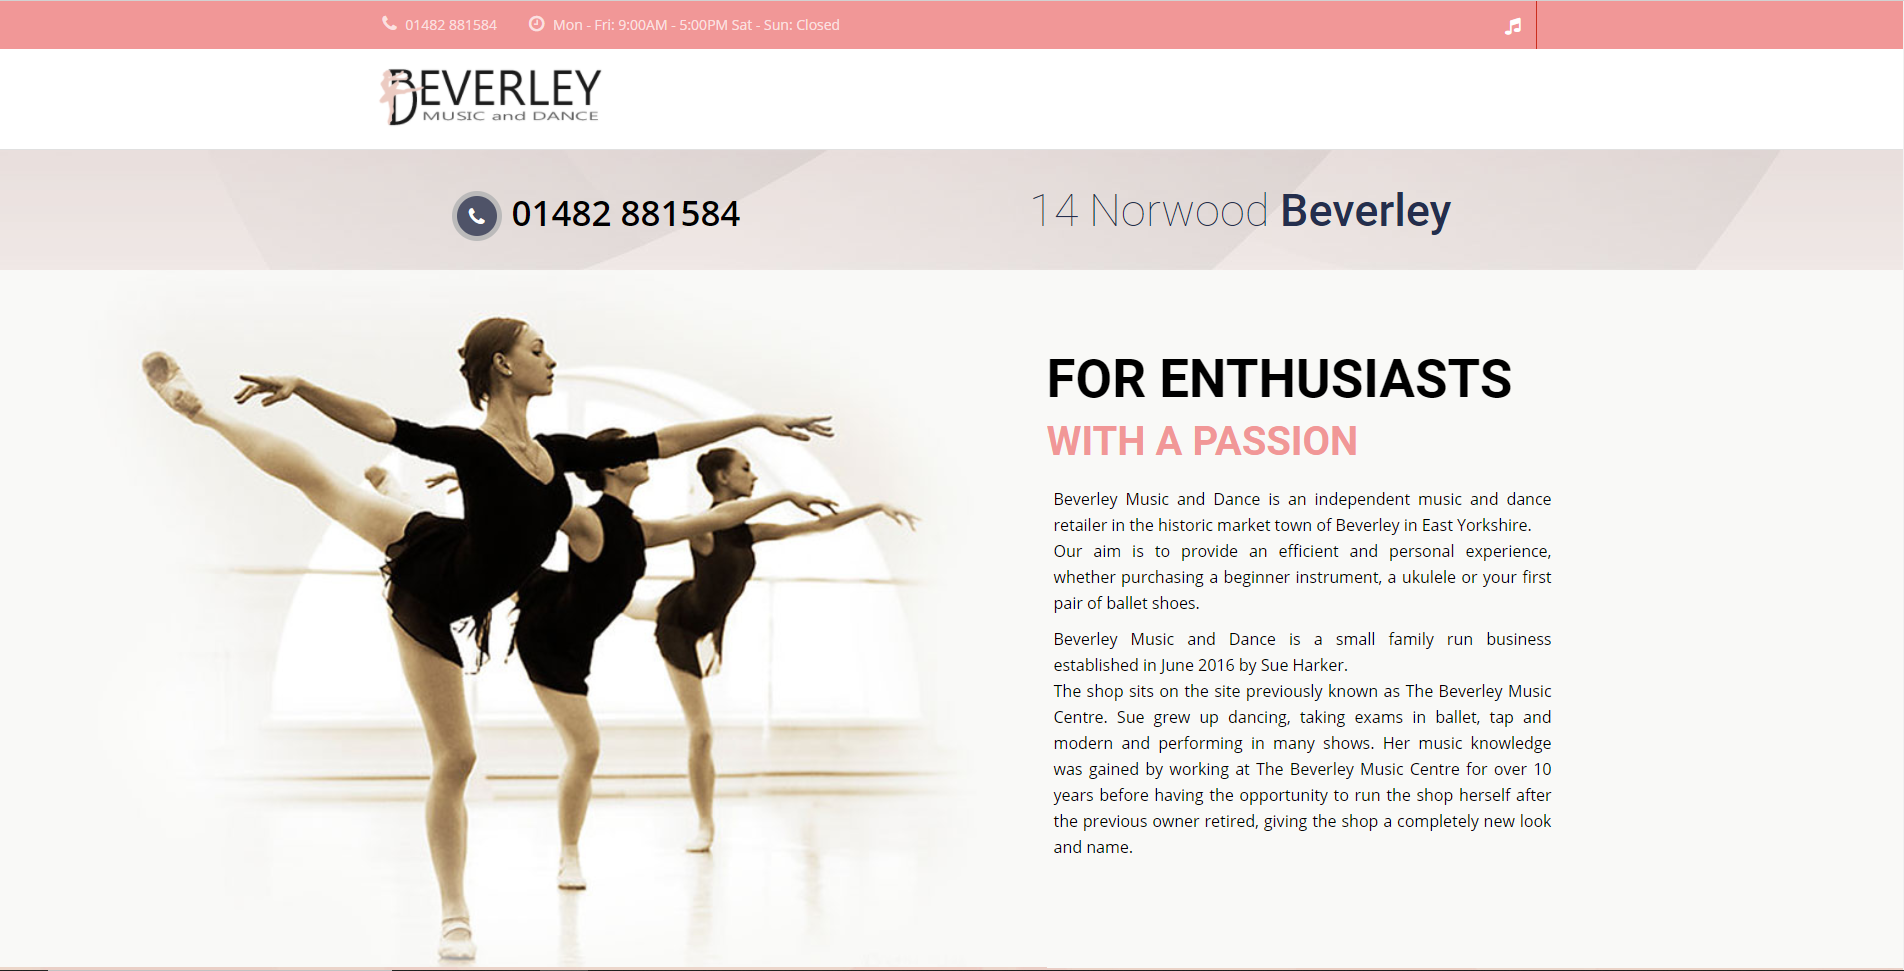 Beverley Music and Dance